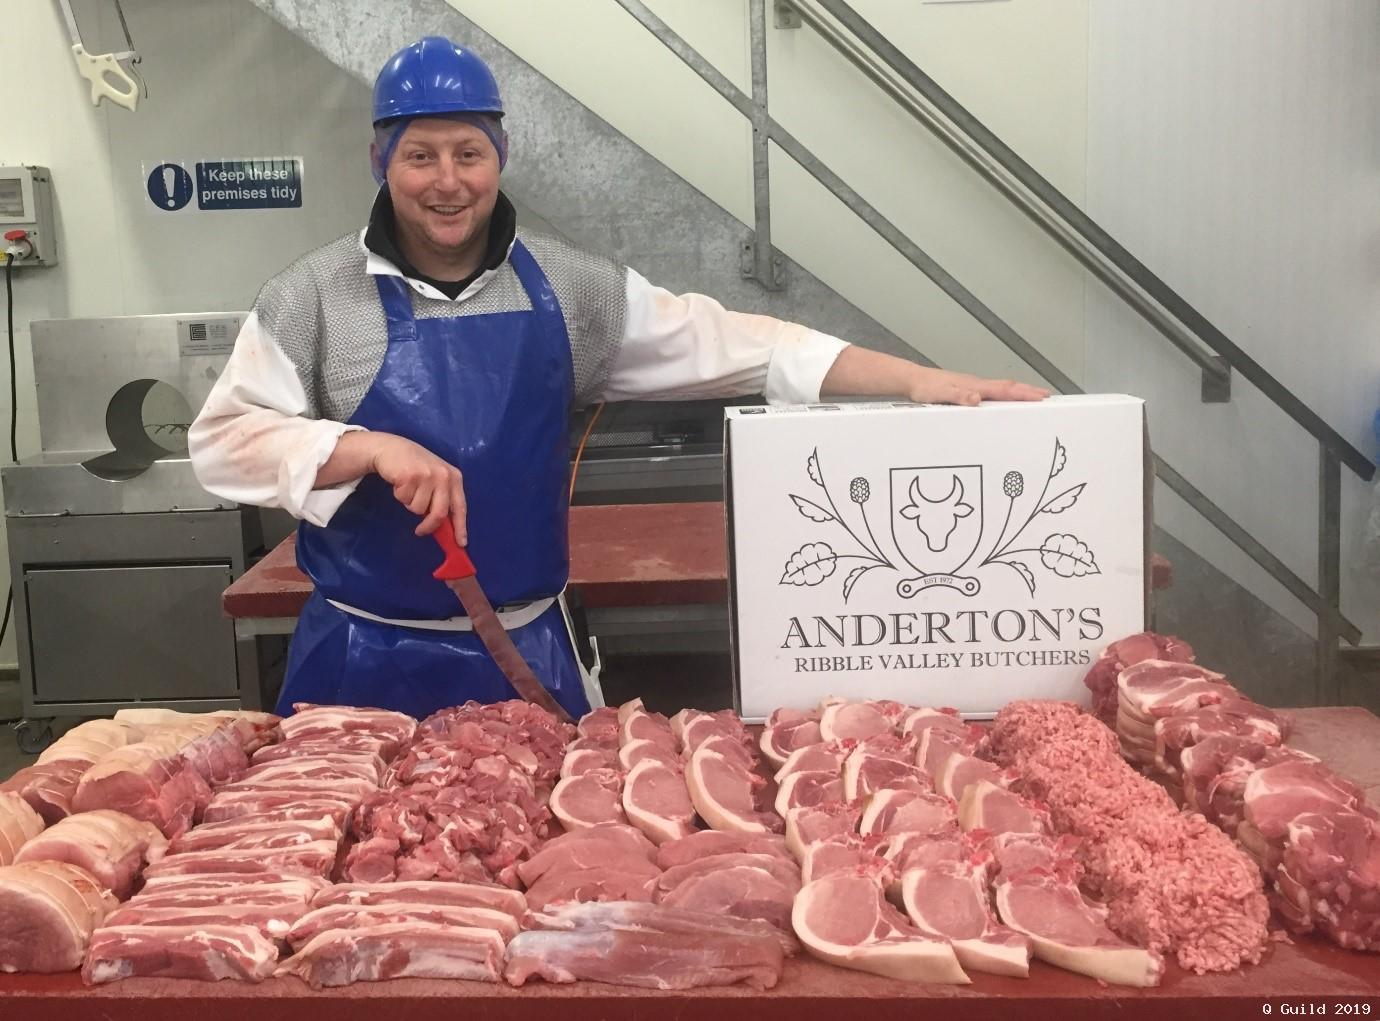 More than just a Butchers! Anderton Ribble Valley Butchers